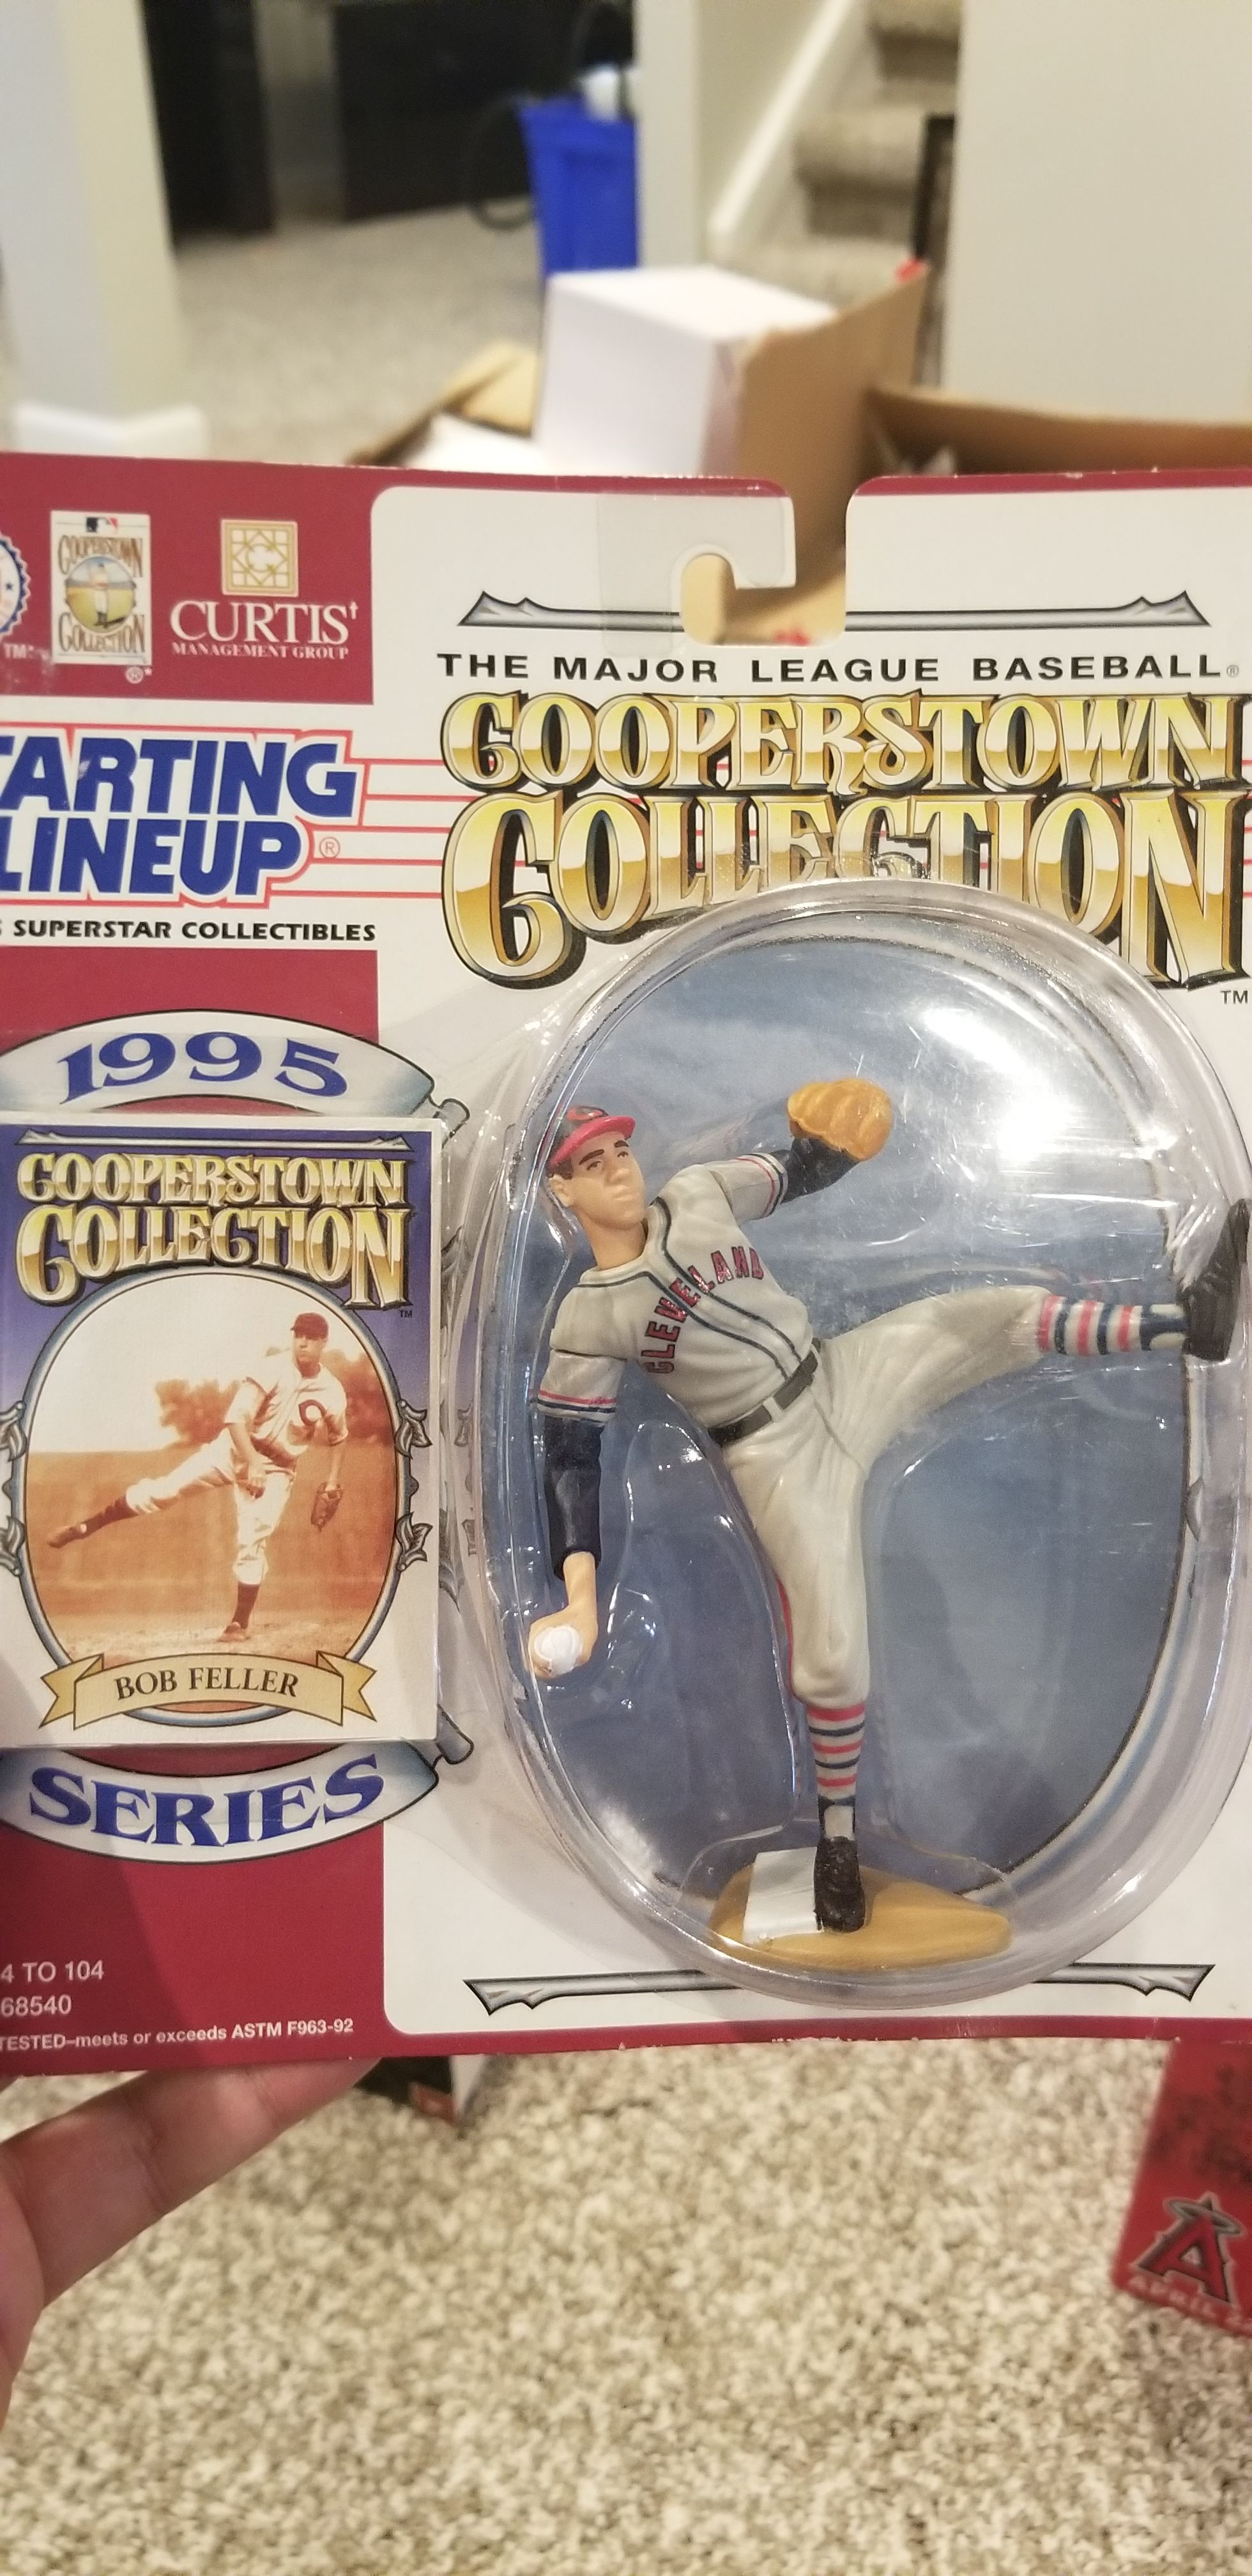 Bob Feller Starting Lineup Bobblehead (1995) front image (front cover)